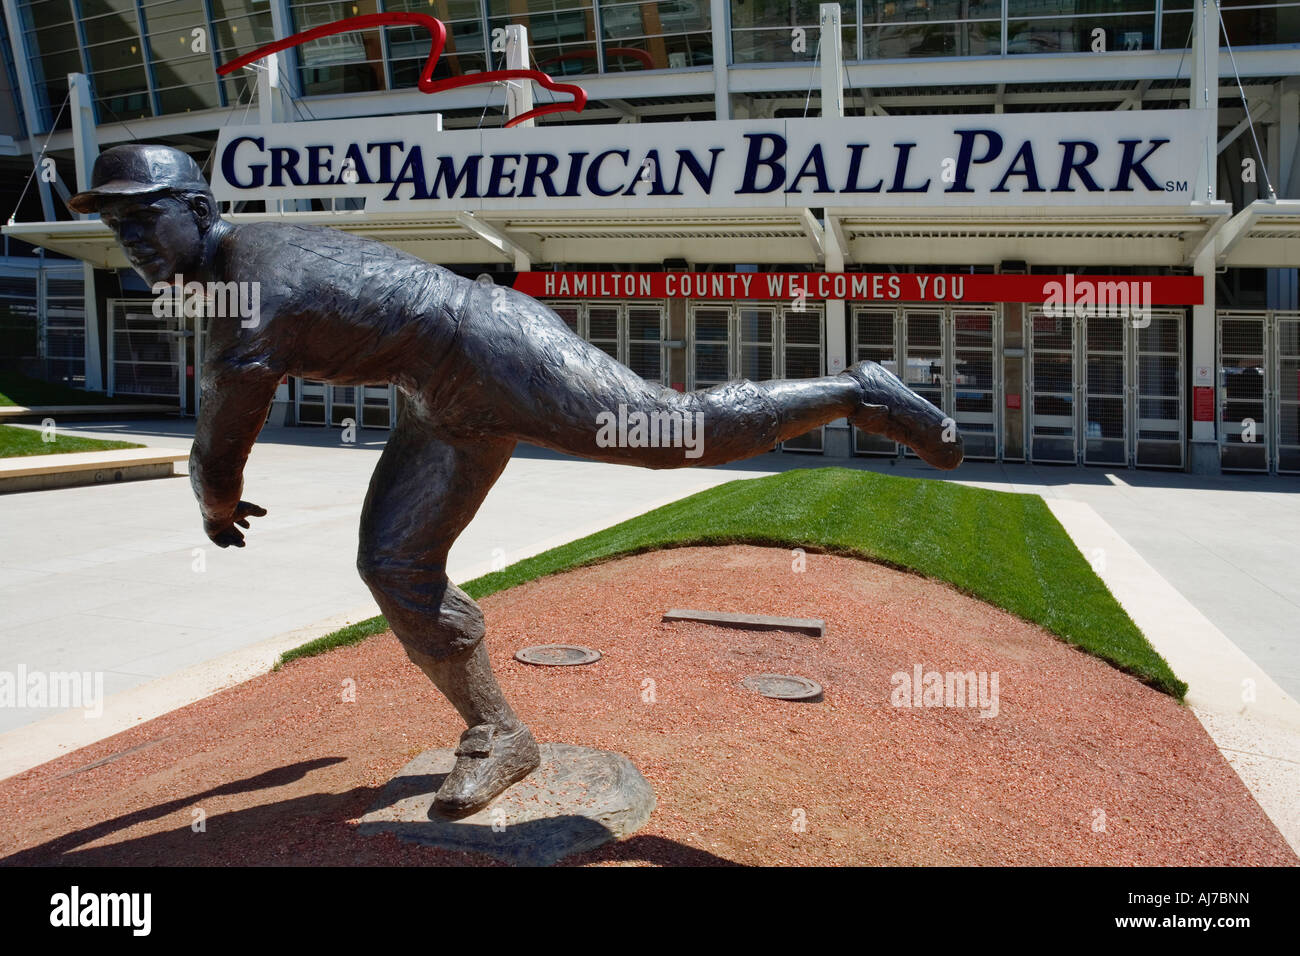 Statues of past Reds greats welcomes visitors as they enter Great American Ball Park Cincinnati Ohio - Stock Image